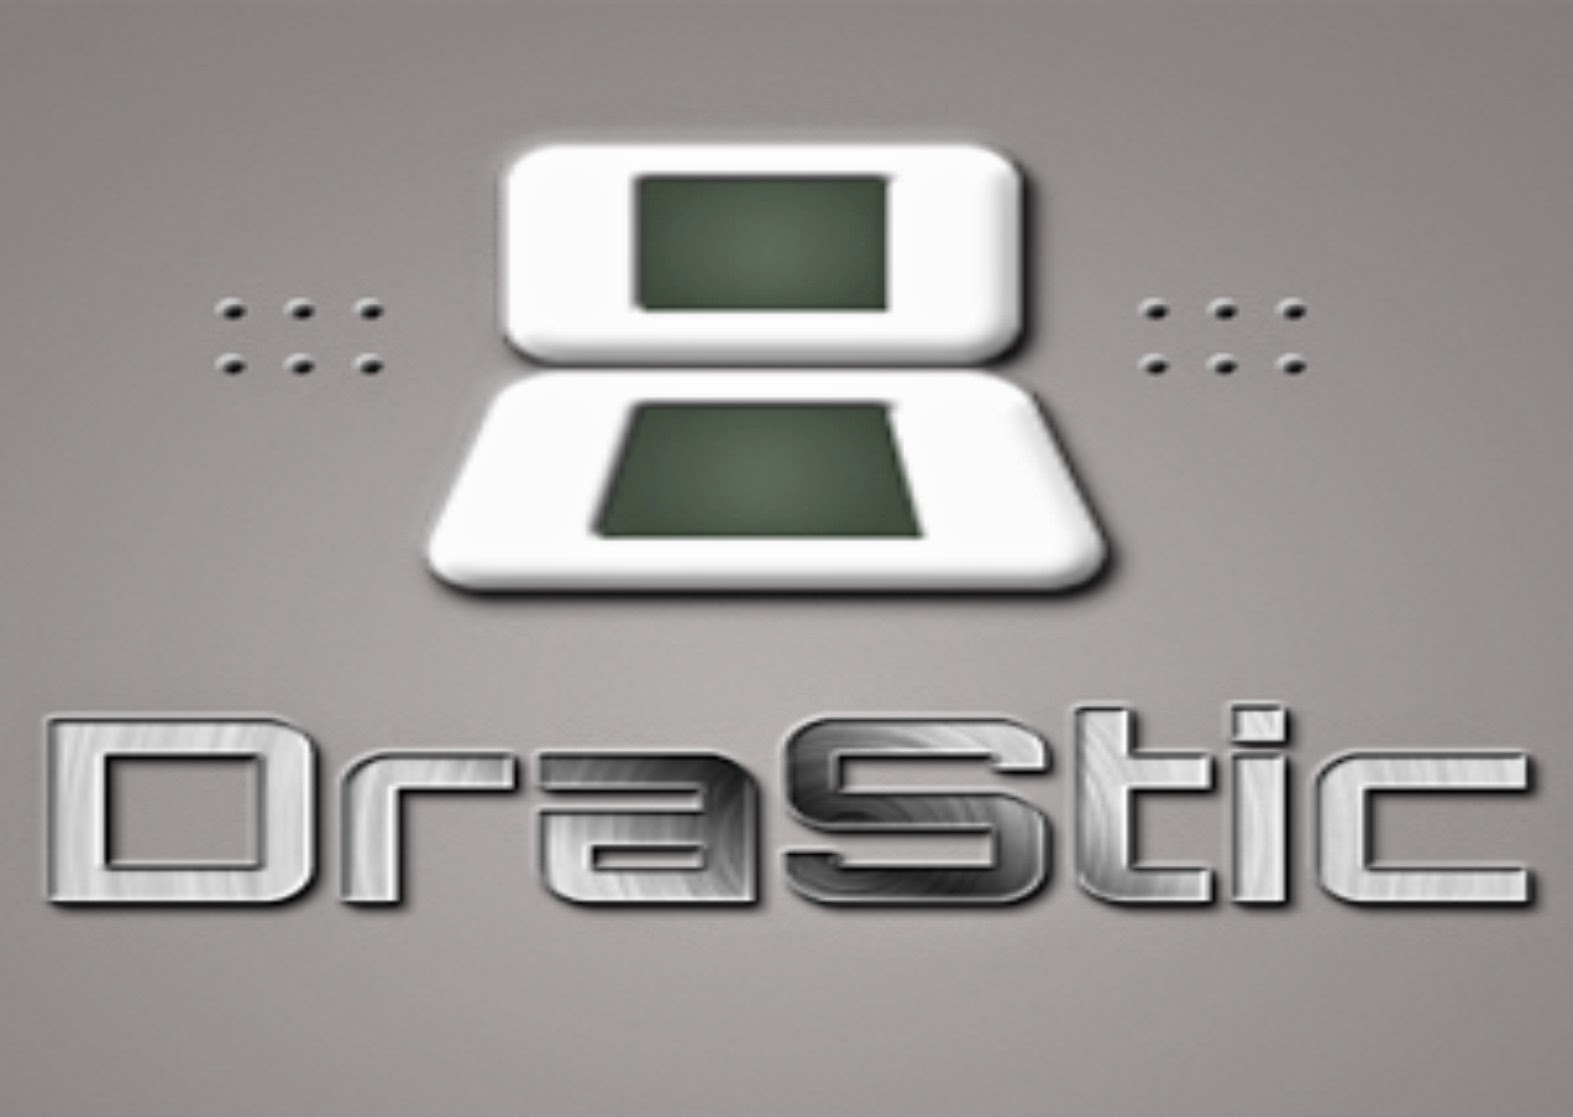 DraStic DS Emulator APK r a Paid/License Full Version